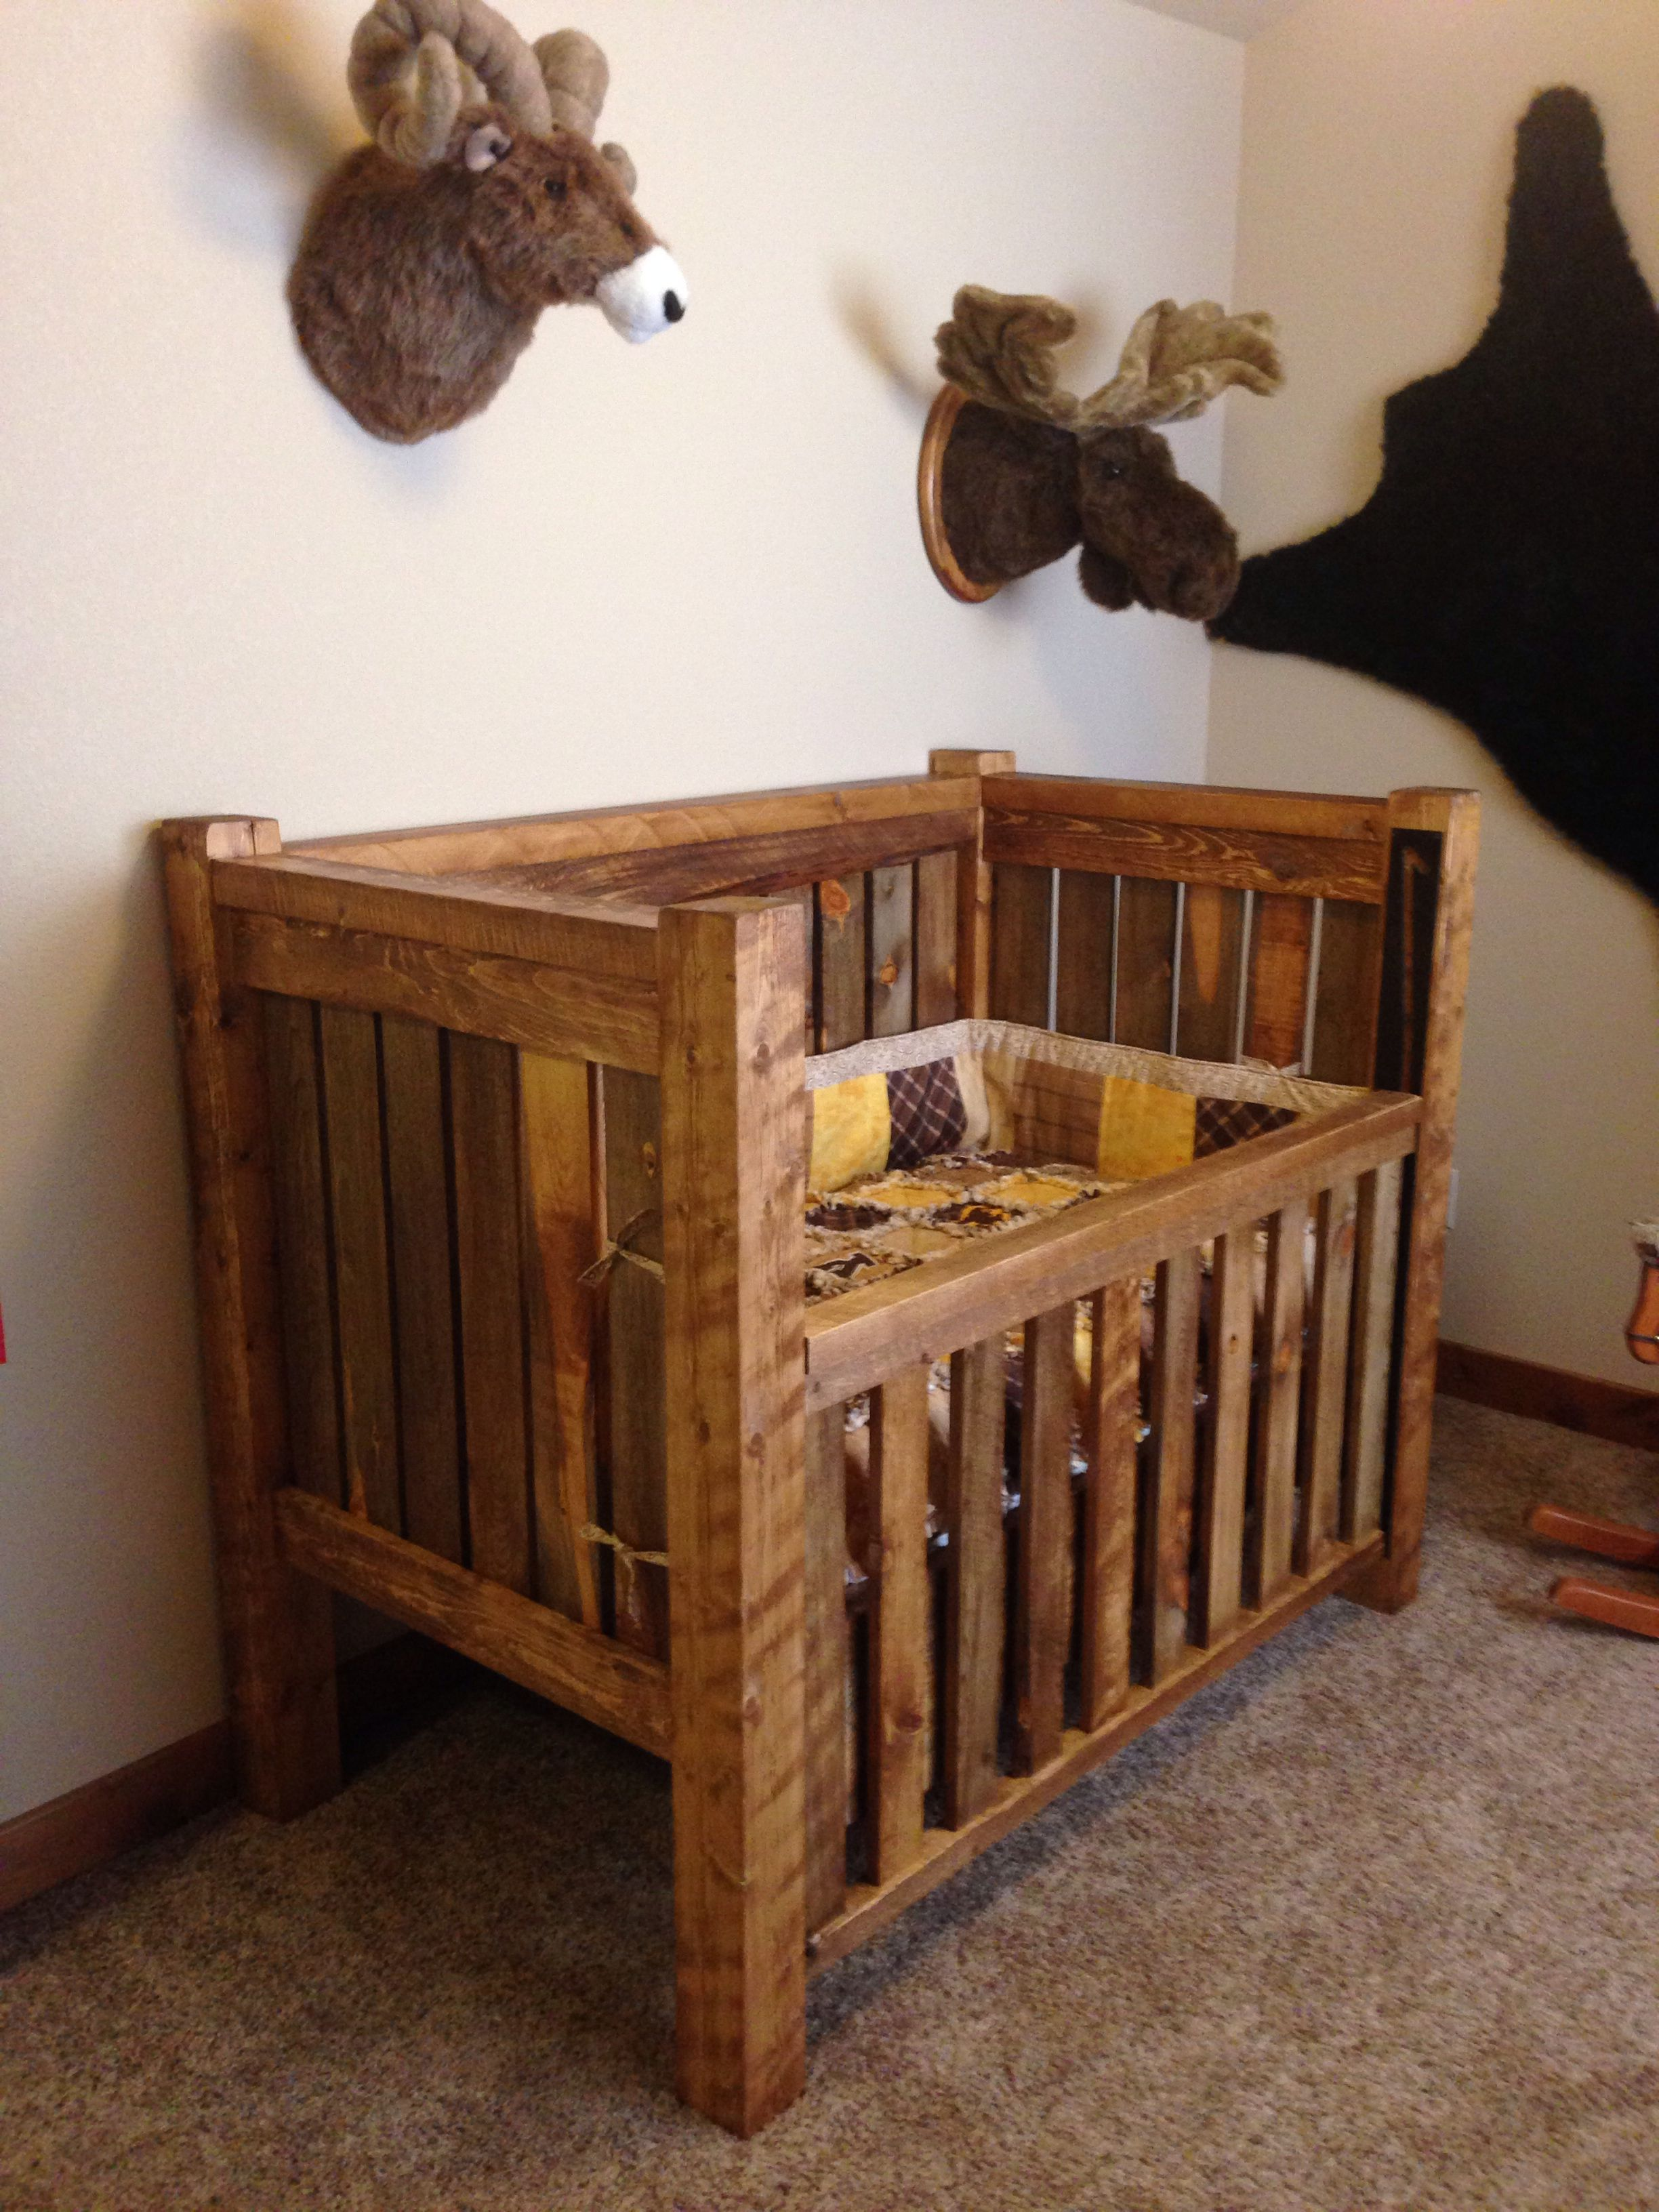 Brookfield fixed gate crib for sale - 1000 Images About Baby Vande Voorde On Pinterest Western Baby Bedding Cowboy Theme And Decorating Ideas